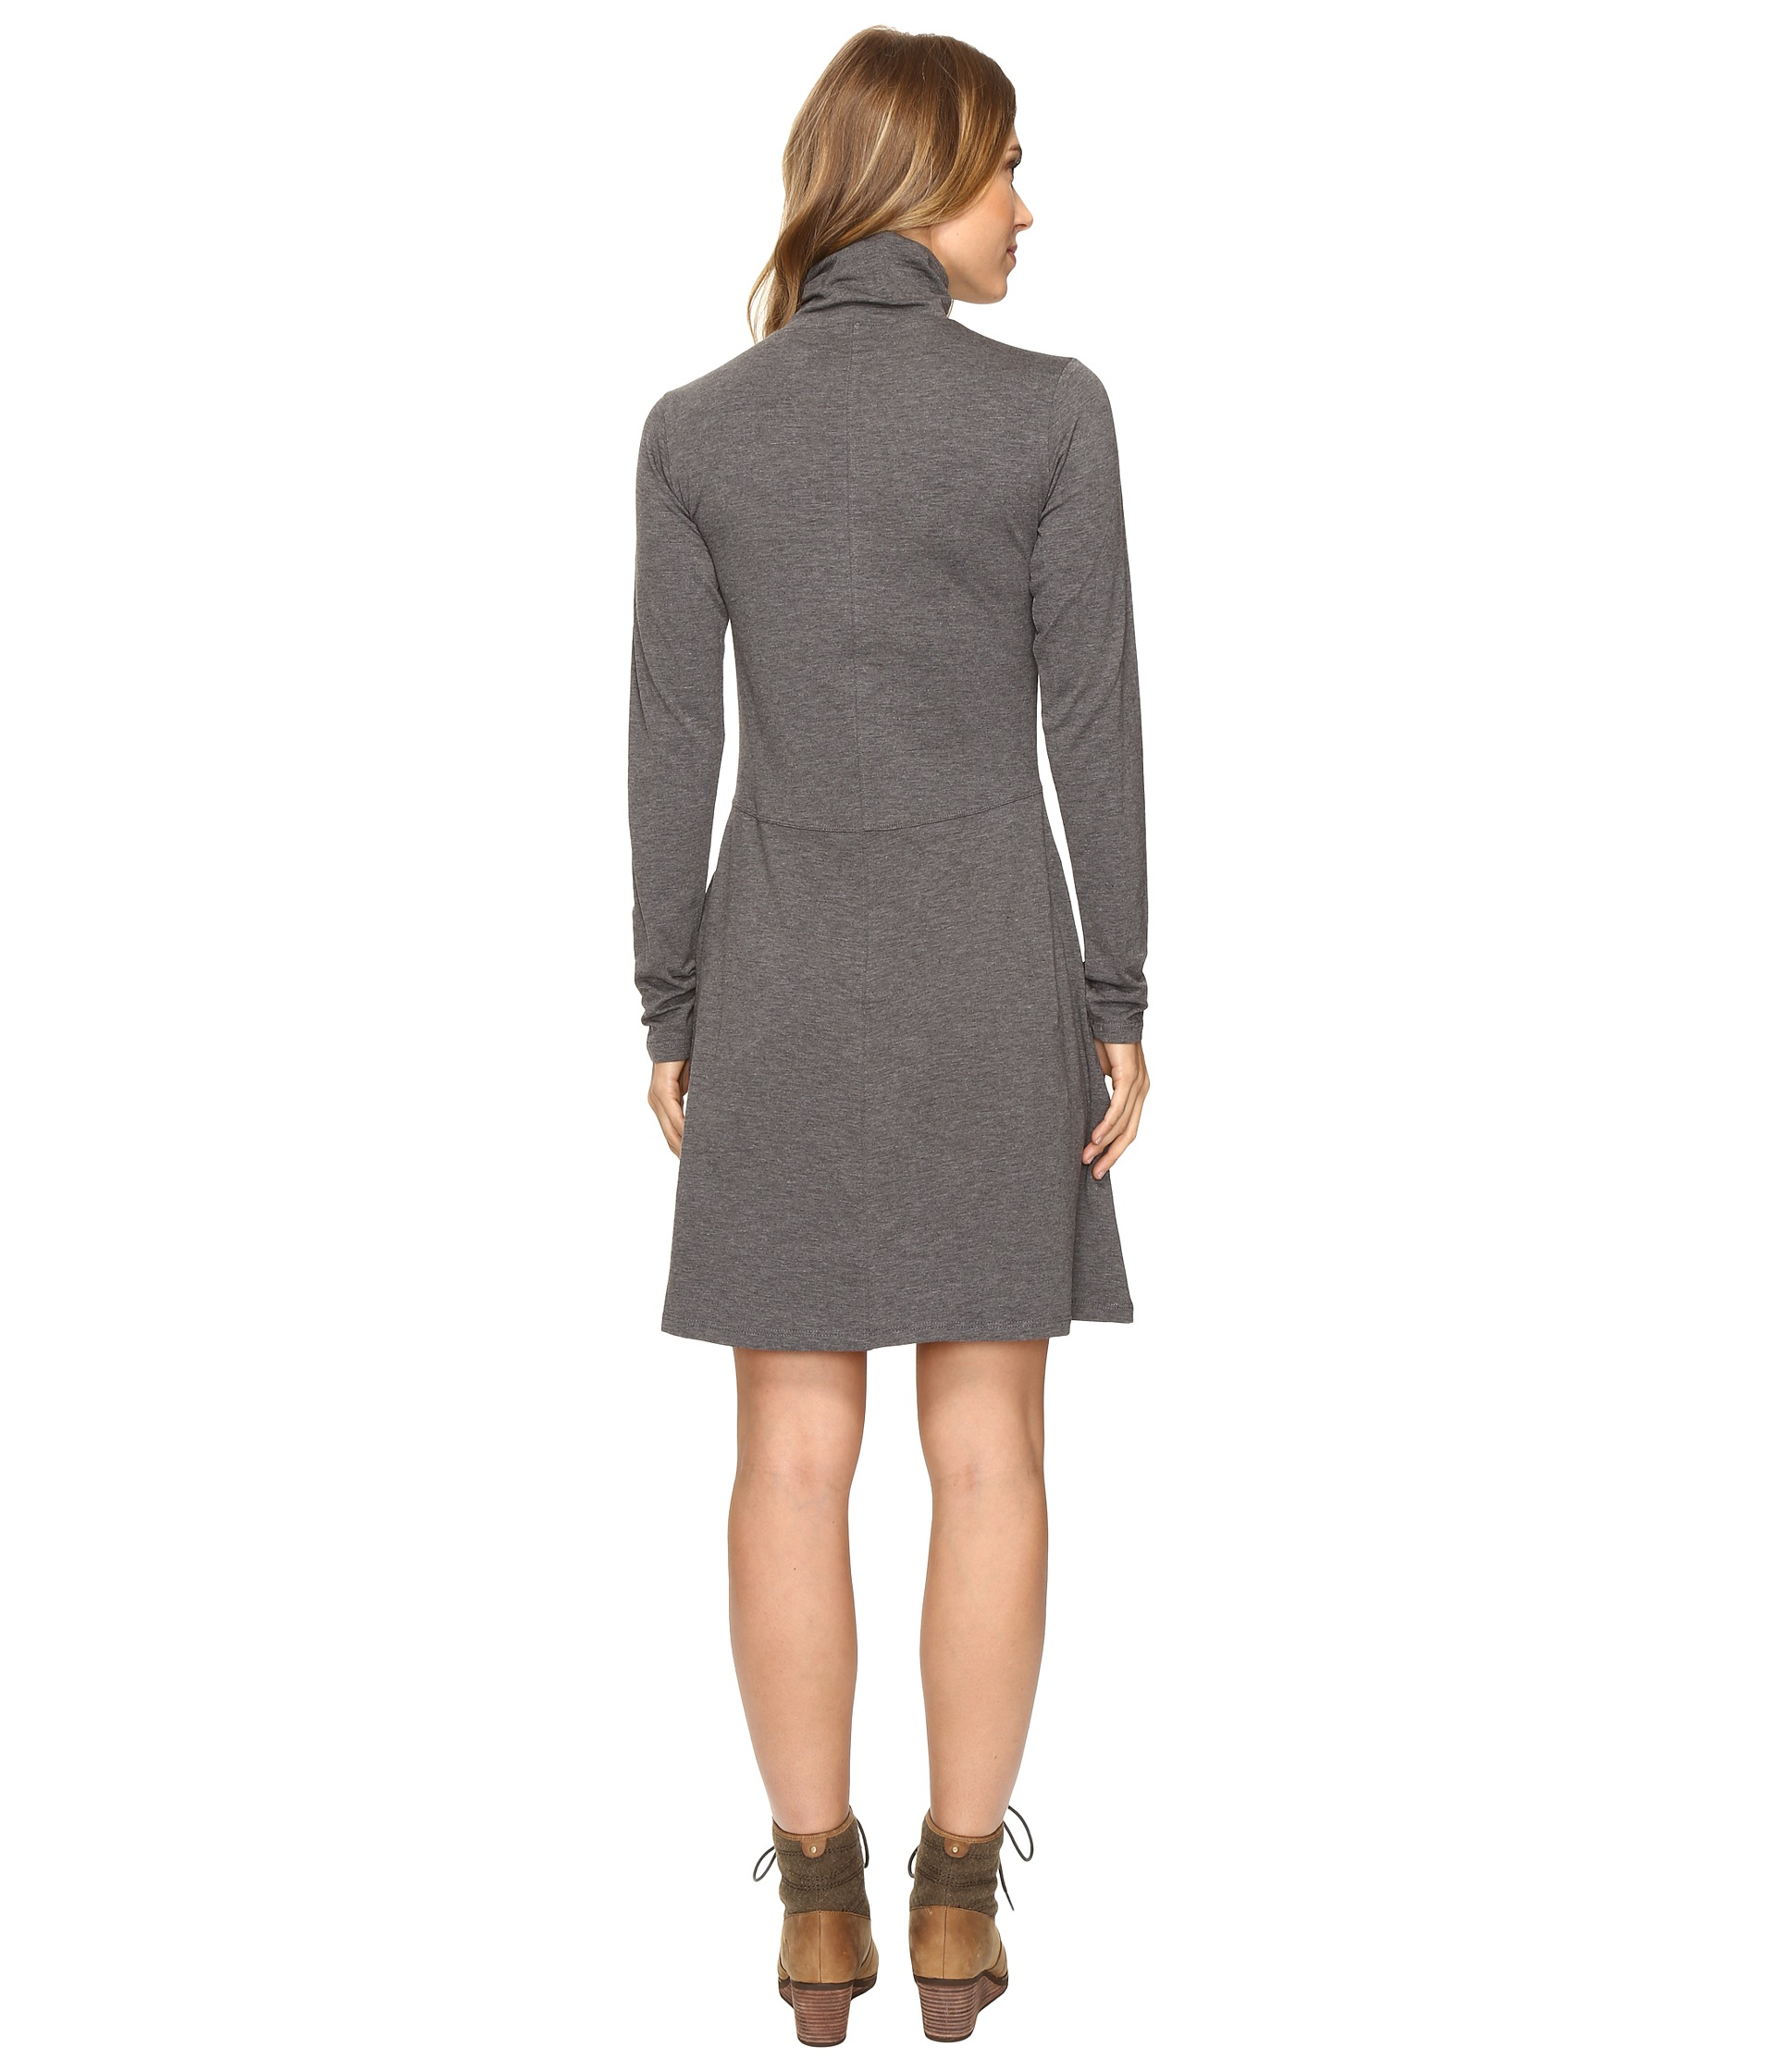 Toad&Co Winterdance Dress at Zappos.com